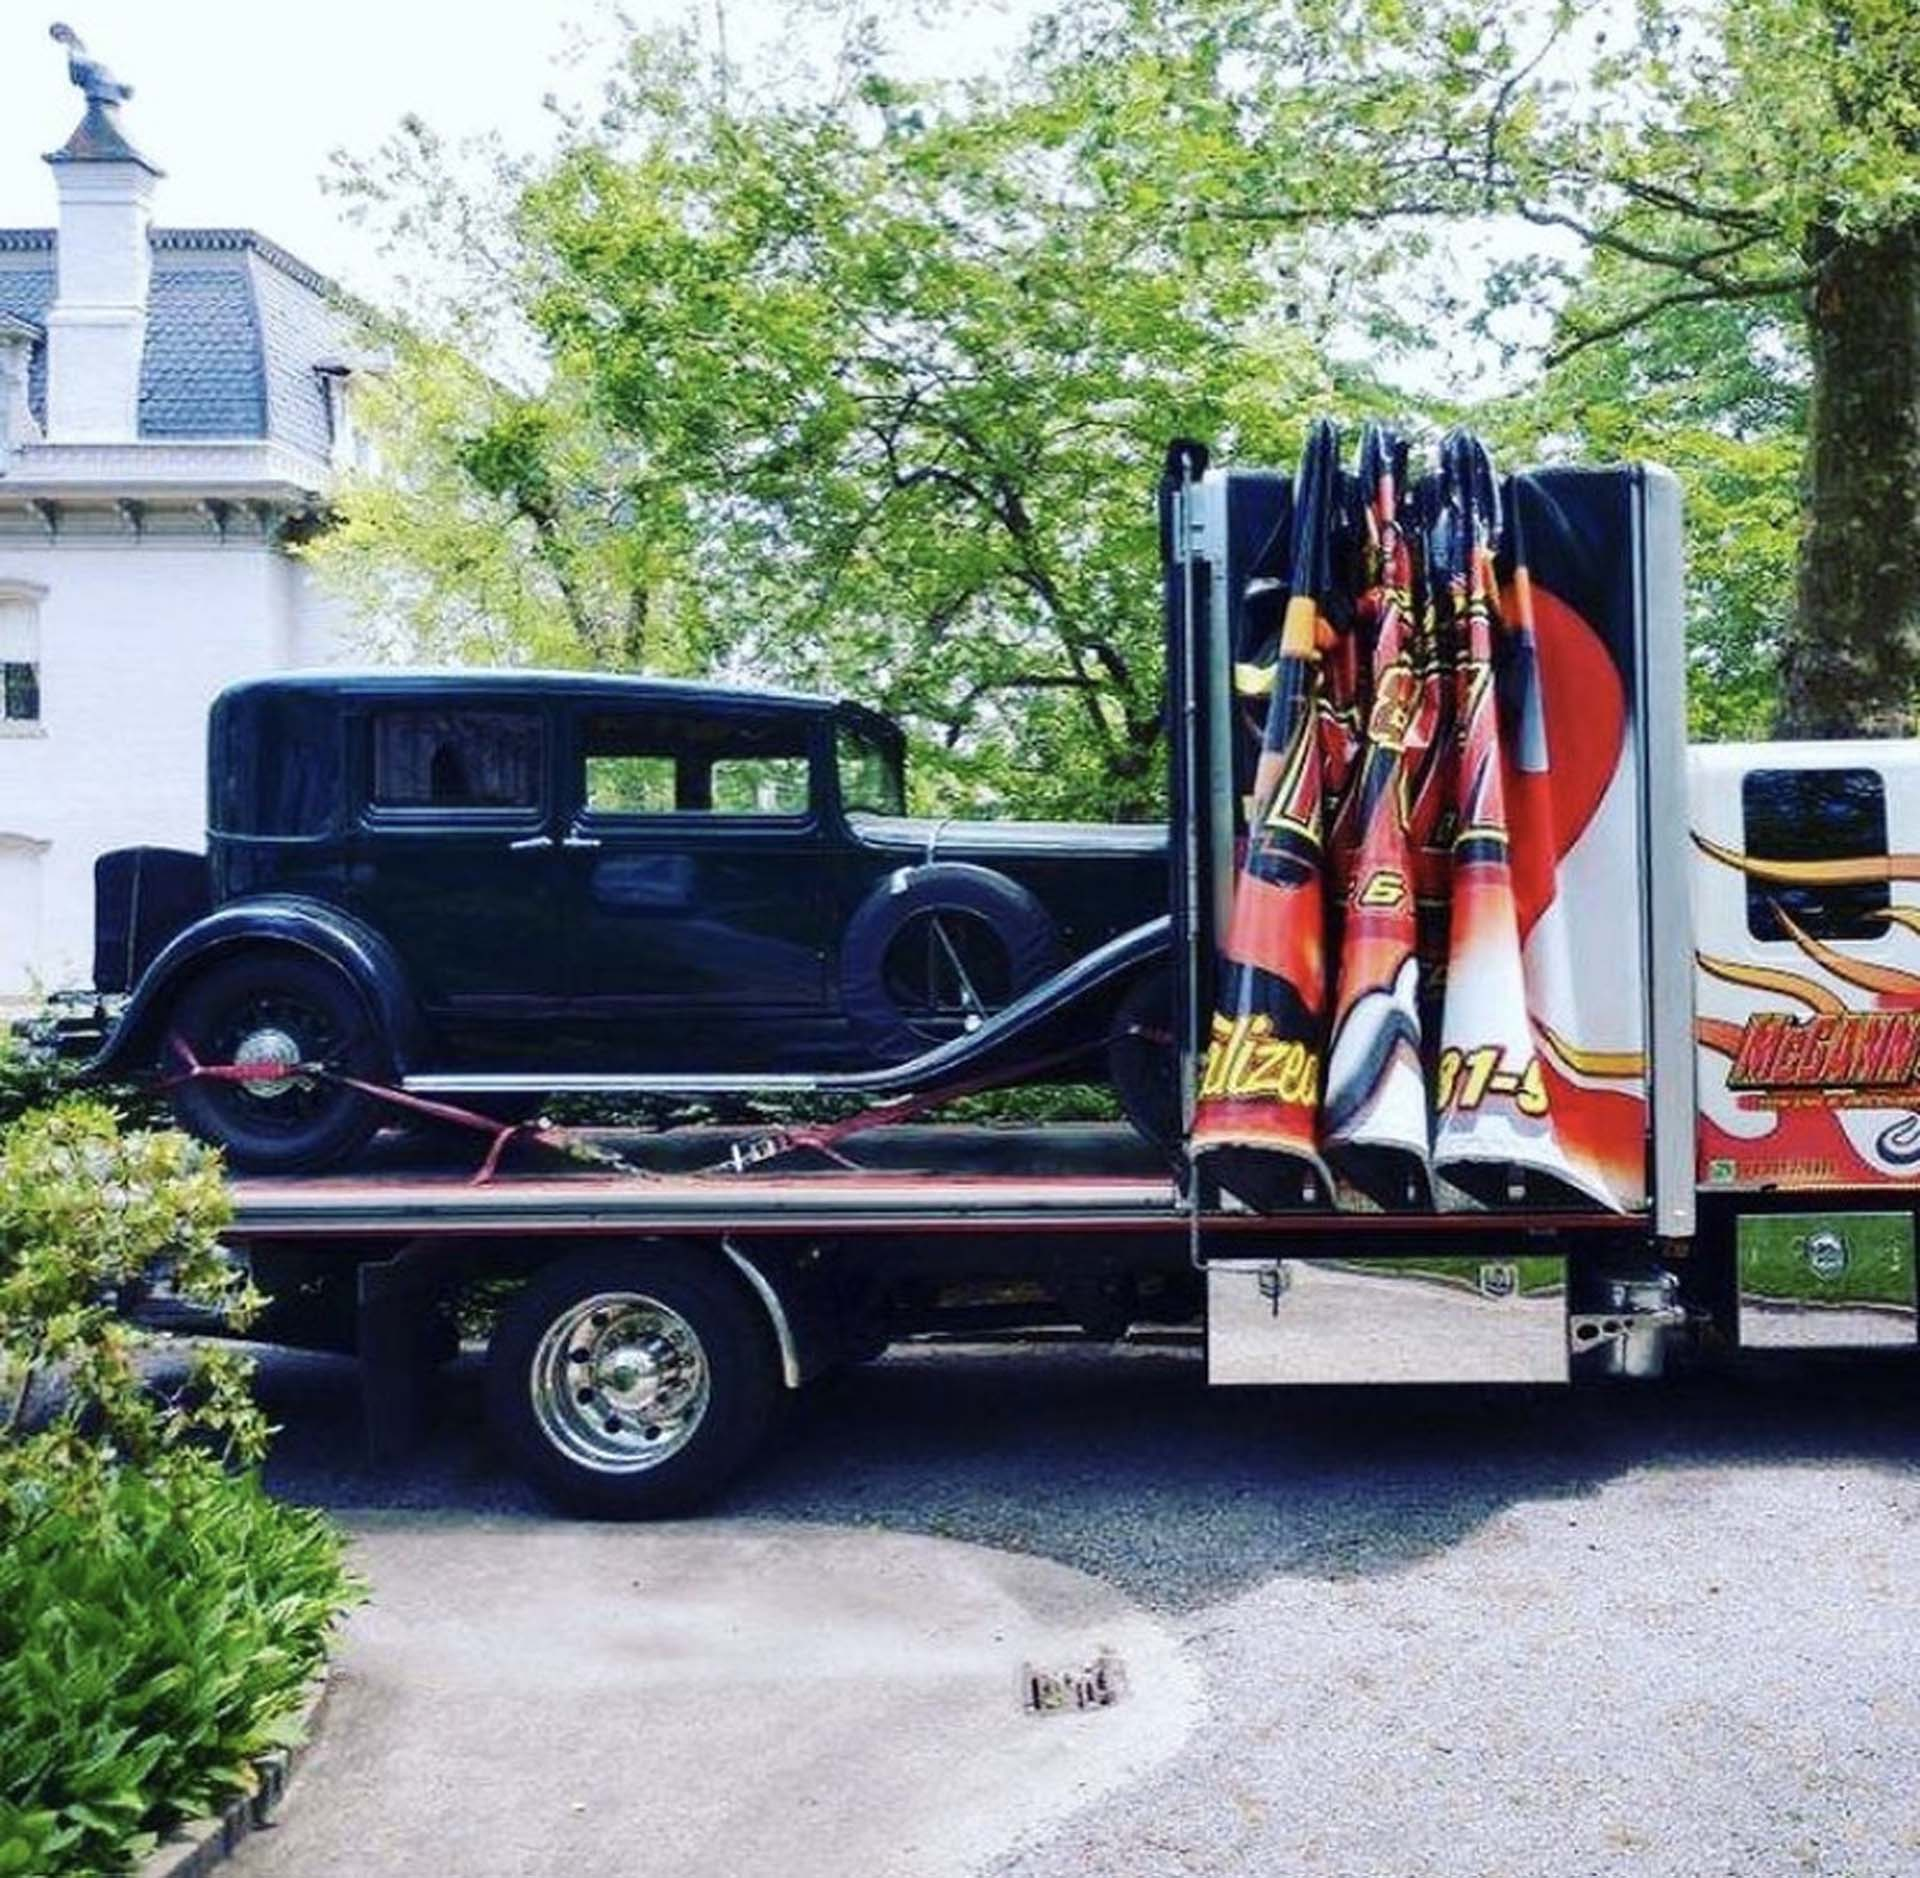 McGann & Chester truck towing old car